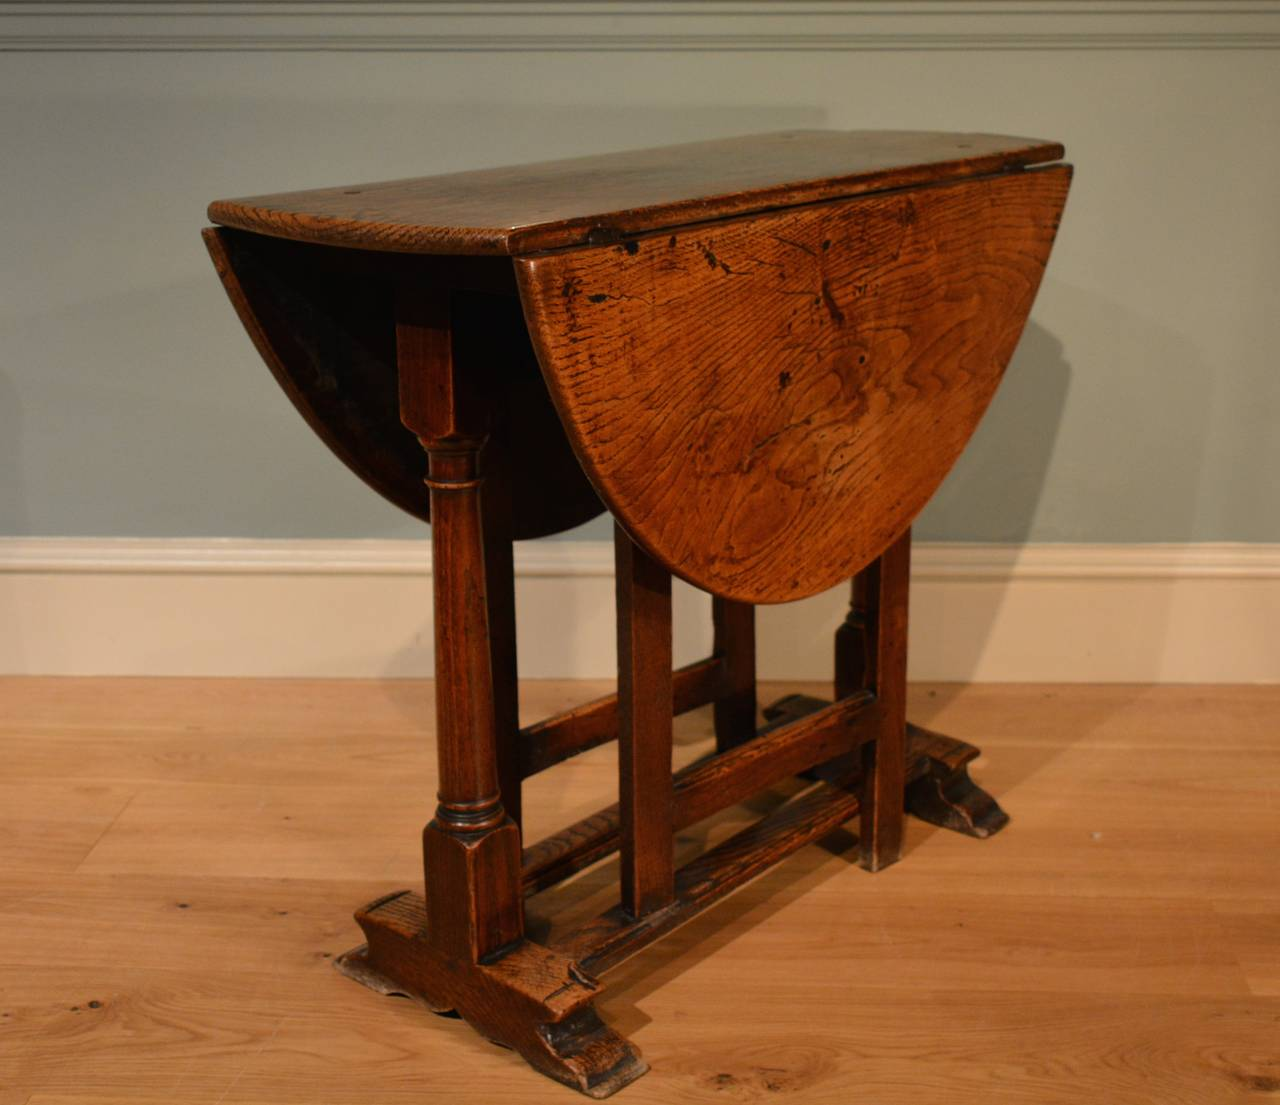 Awesome A Small Late 17th Century Oak Gate Leg Table Of Restrained Design, With  Exceptional